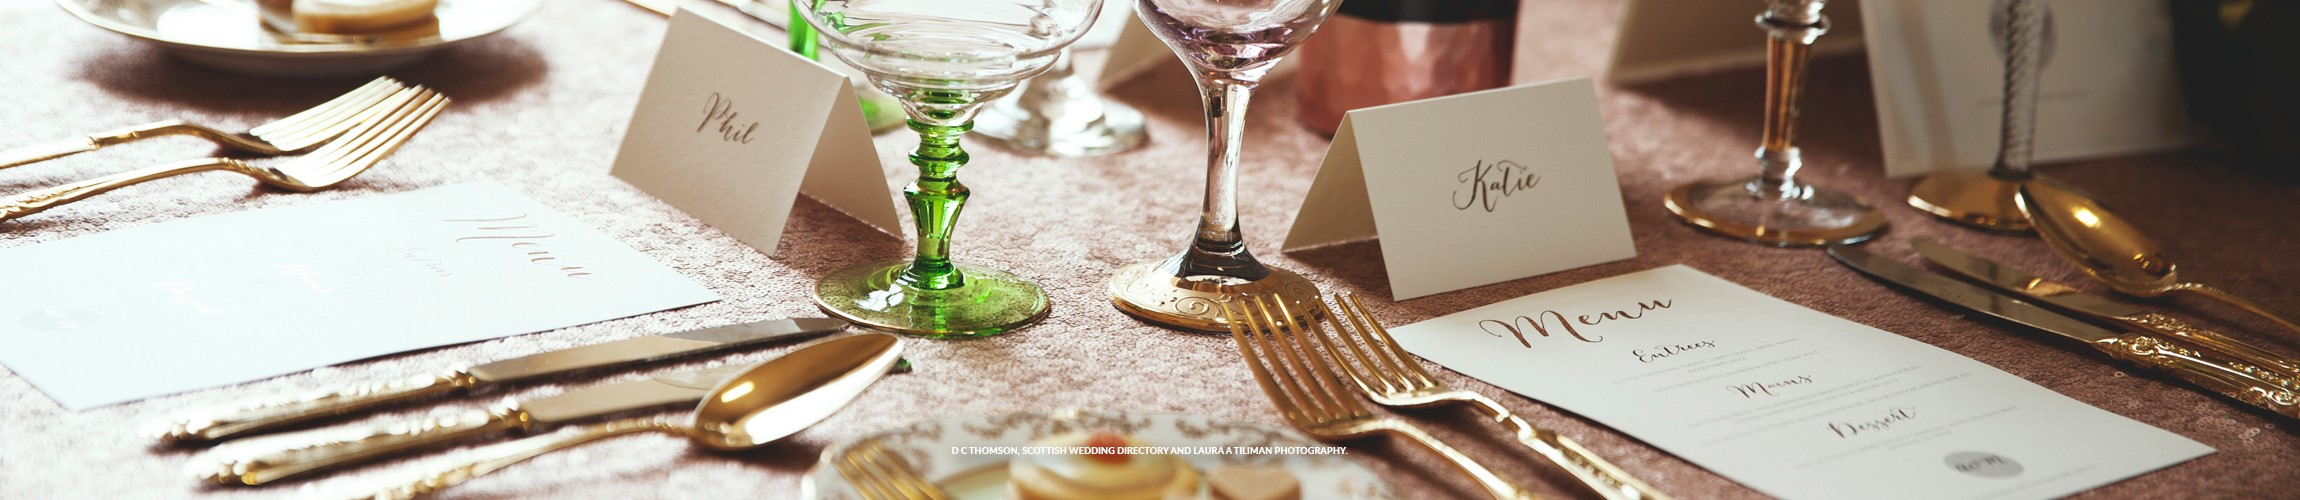 Stunning Wedding Invitation and Table Placecard Designs